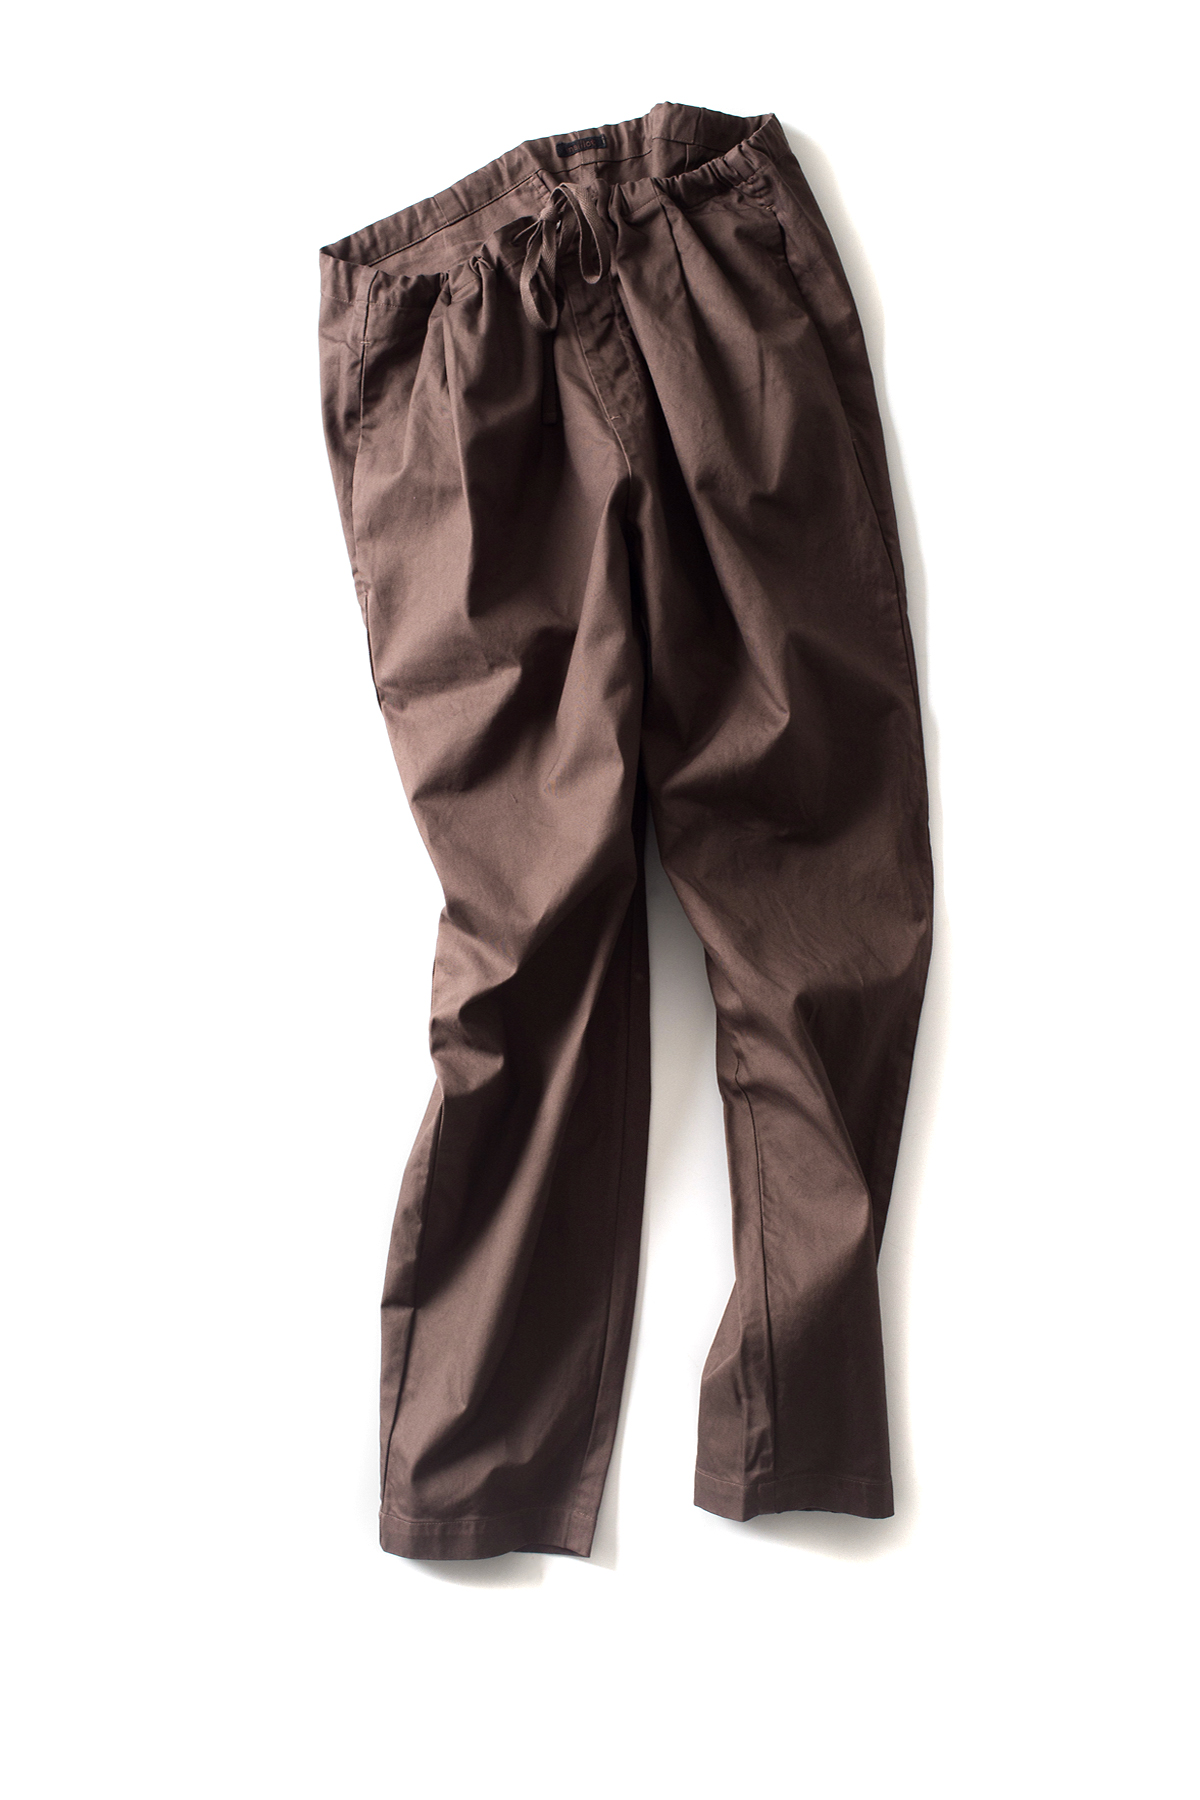 maillot : Drawstring Pants (Brown)